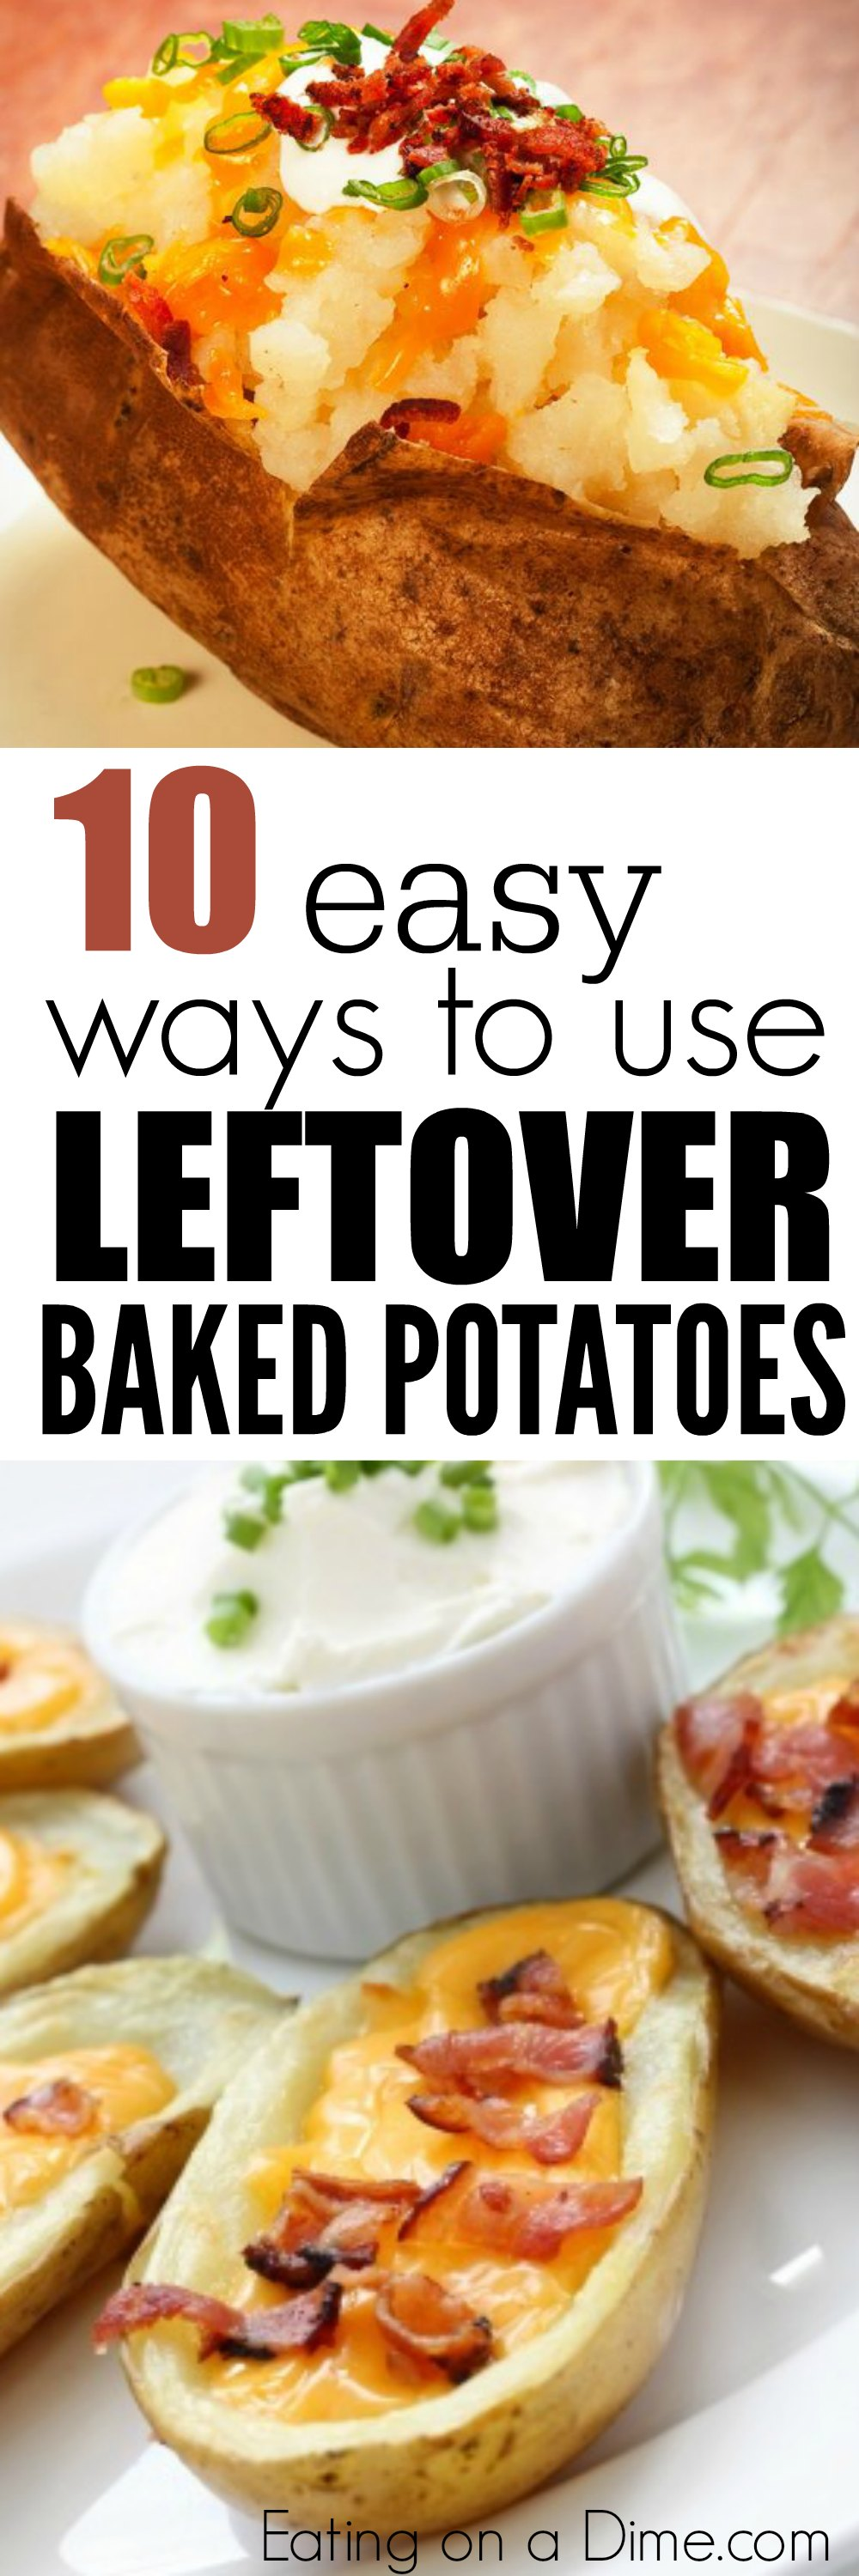 easy ways to use leftover baked potatoes